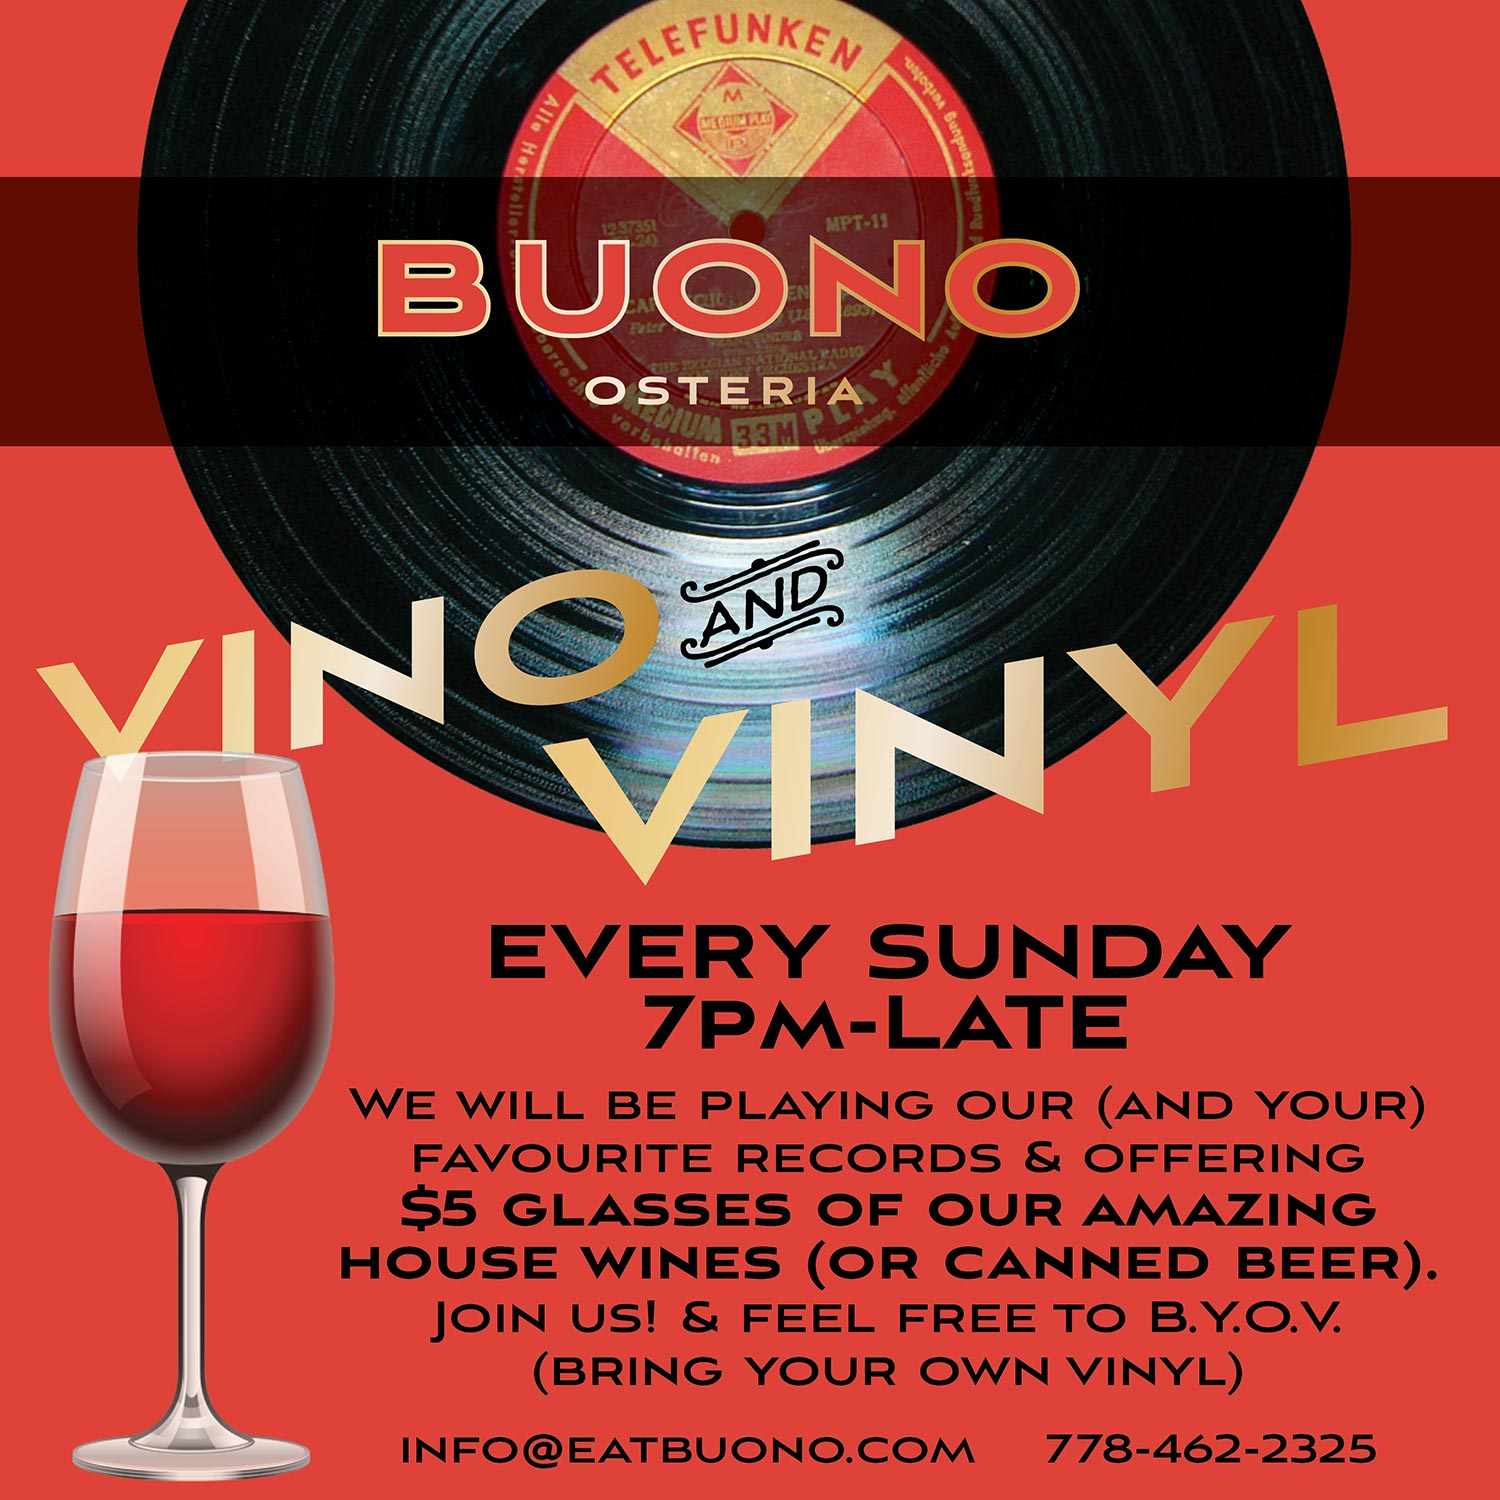 Promo poster for Buono in Lower Gibsons.